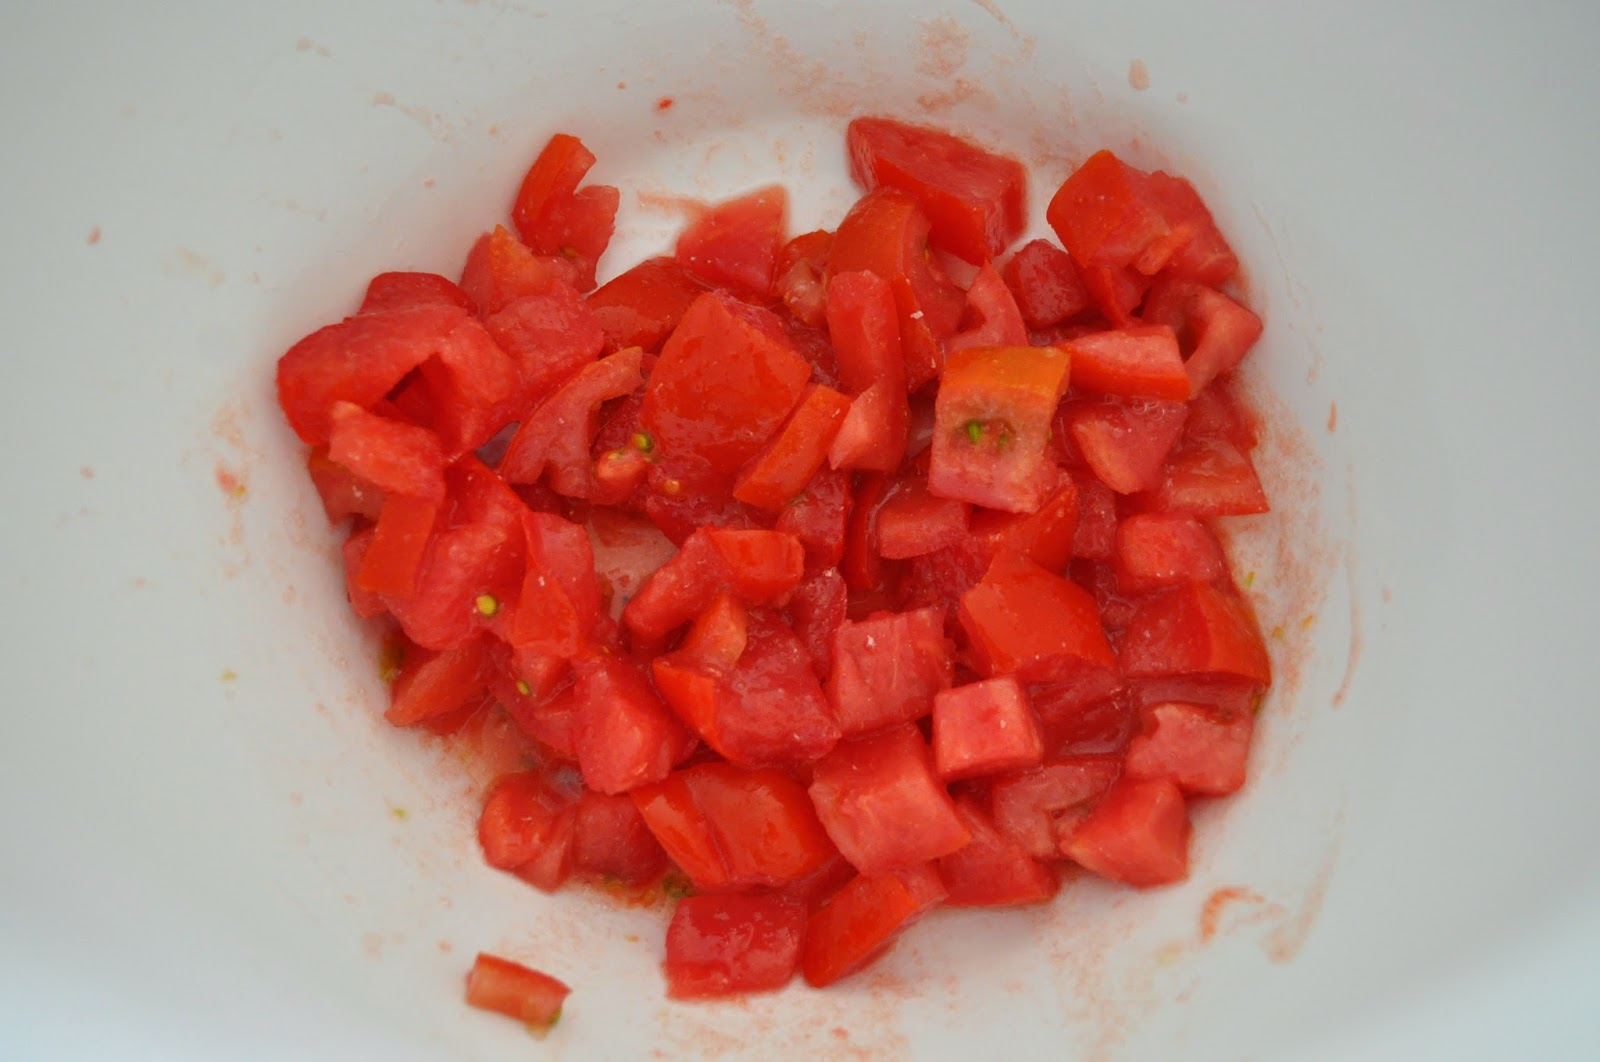 how to cut tomato in small pieces